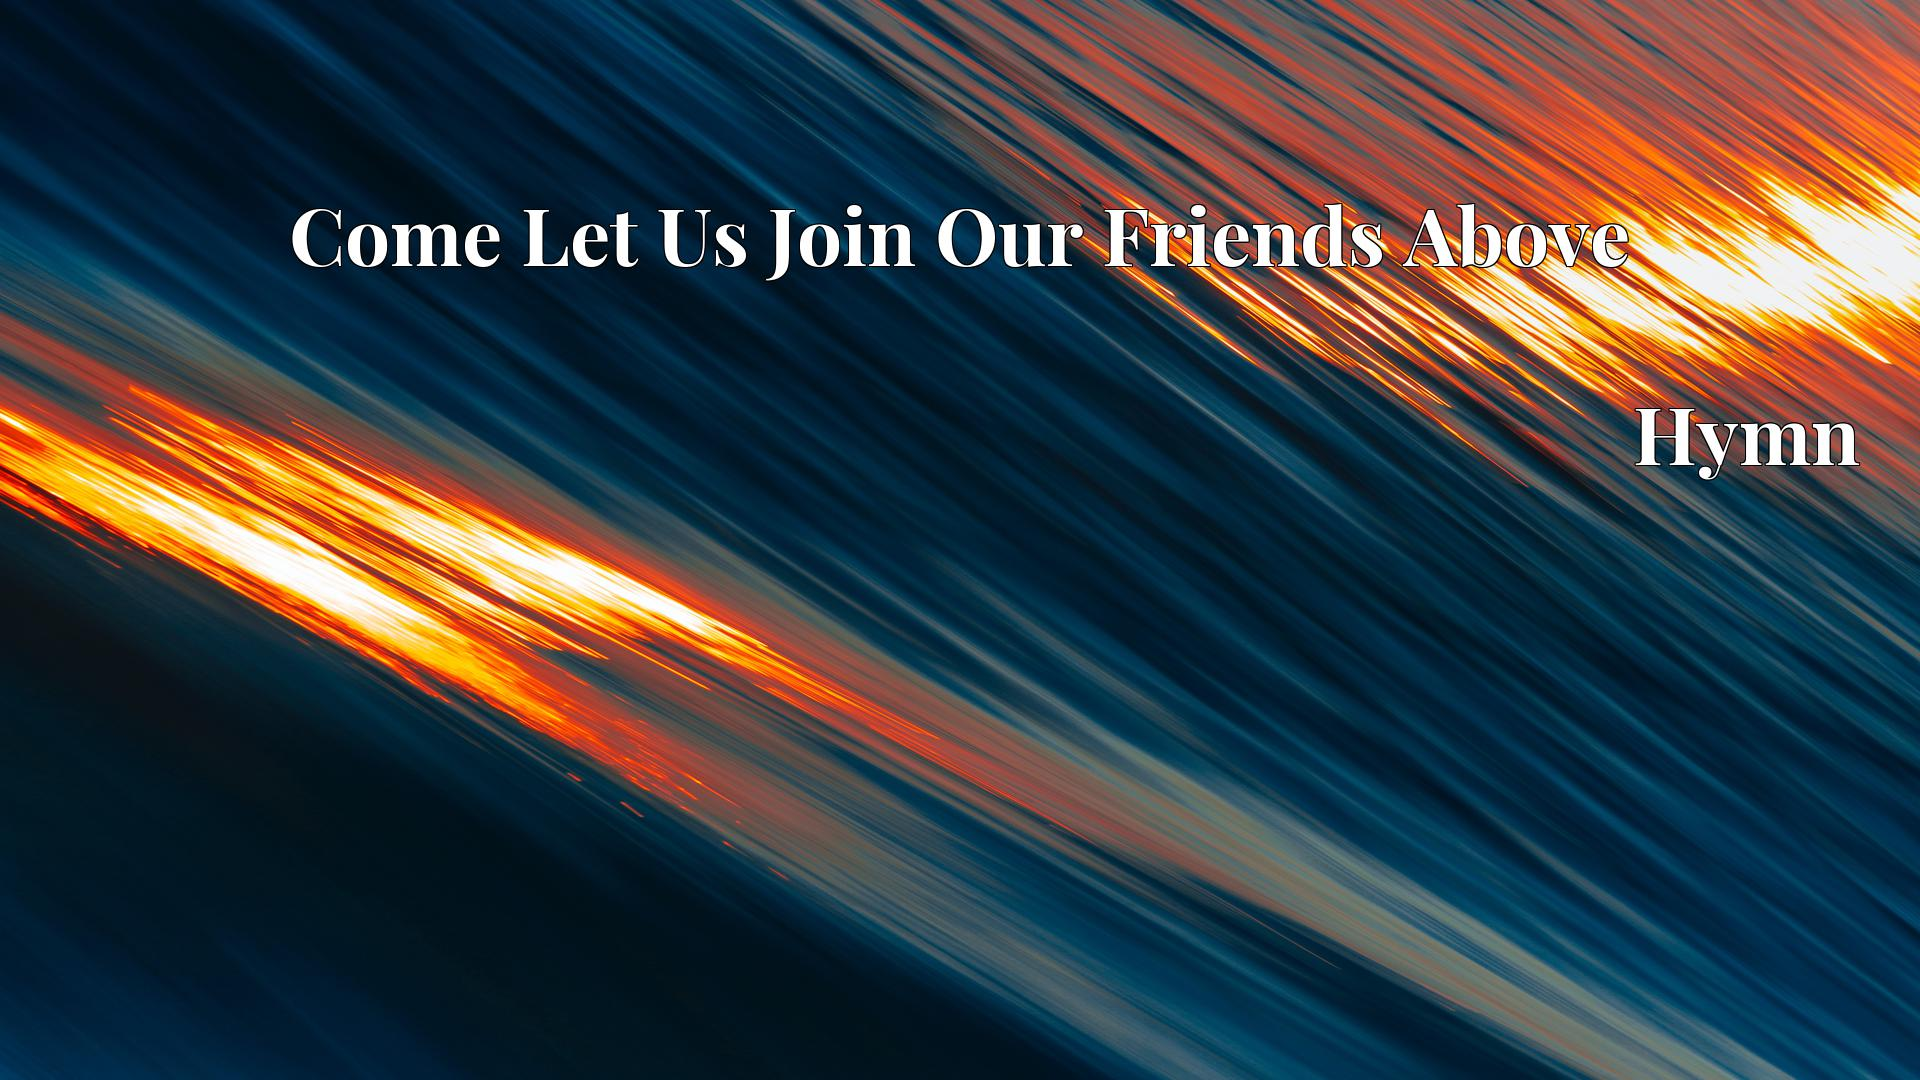 Come Let Us Join Our Friends Above - Hymn